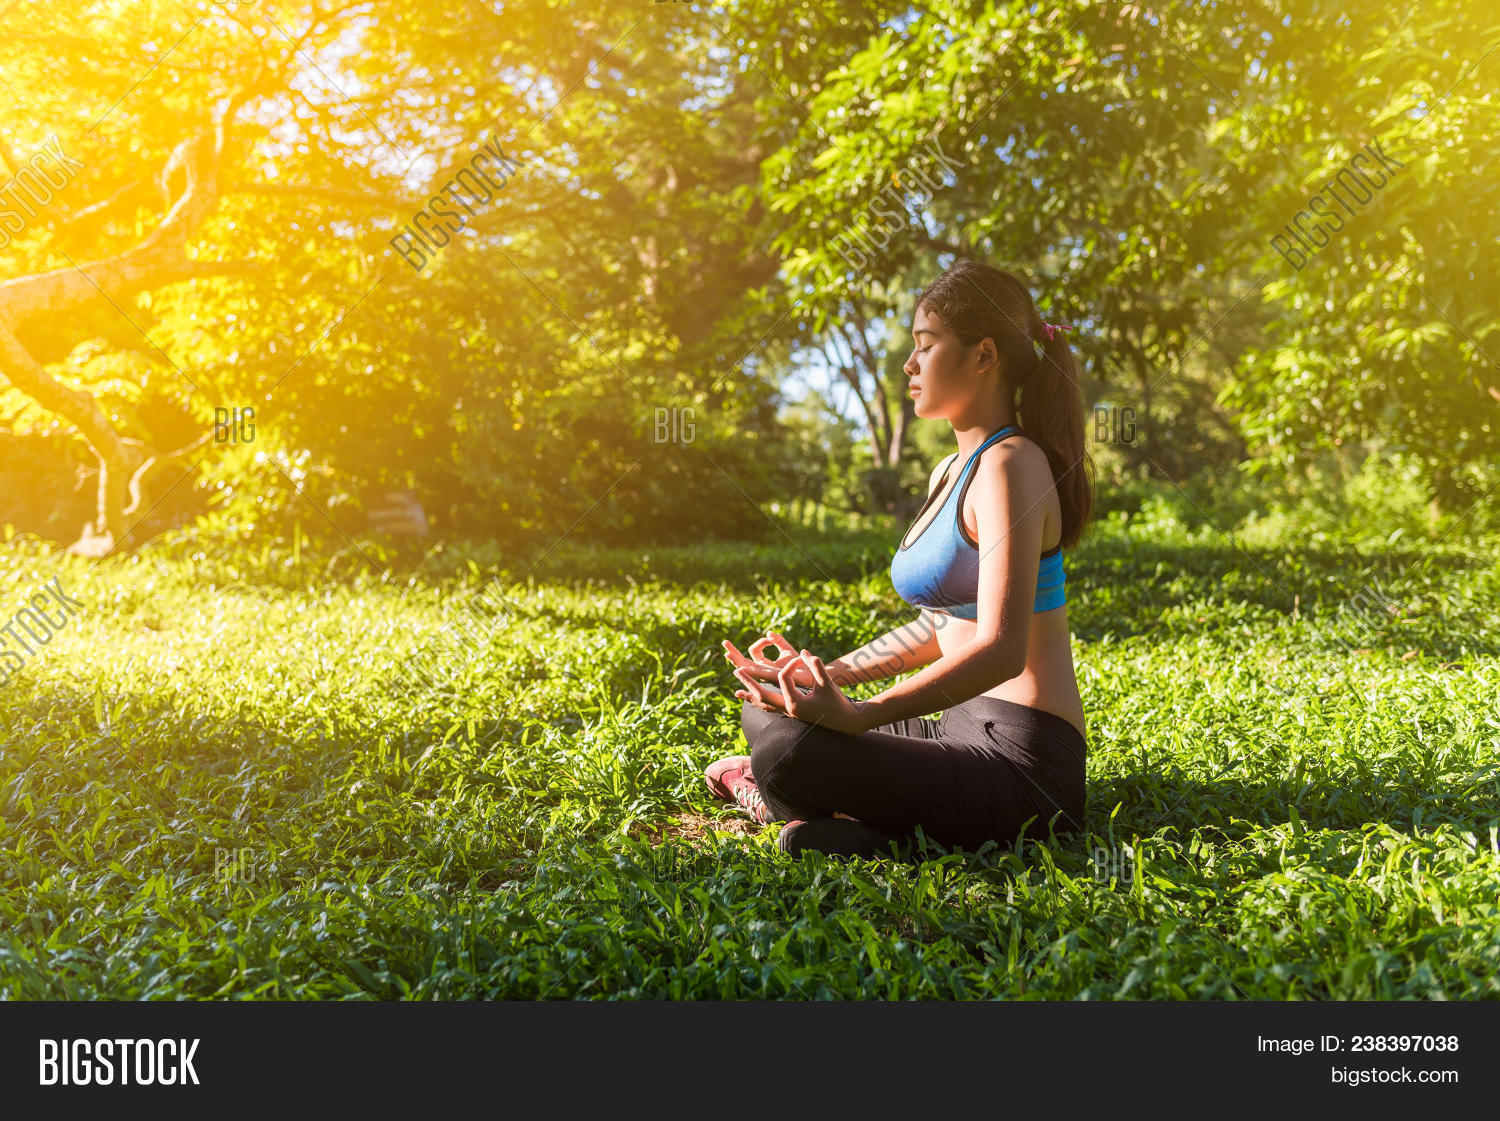 beautiful,beauty,body,calm,caucasian,class,concepts,contemplation,exercise,female,fitness,girl,grass,green,health,healthy,human,lifestyle,lotus,meditate,meditating,meditation,nature,only,outdoor,park,peace,people,person,pose,position,psychosis,psychotherapy,relax,relaxation,serene,sitting,soul,summer,sunlight,sunset,tranquil,vitality,wellness,white,woman,women,yoga,young